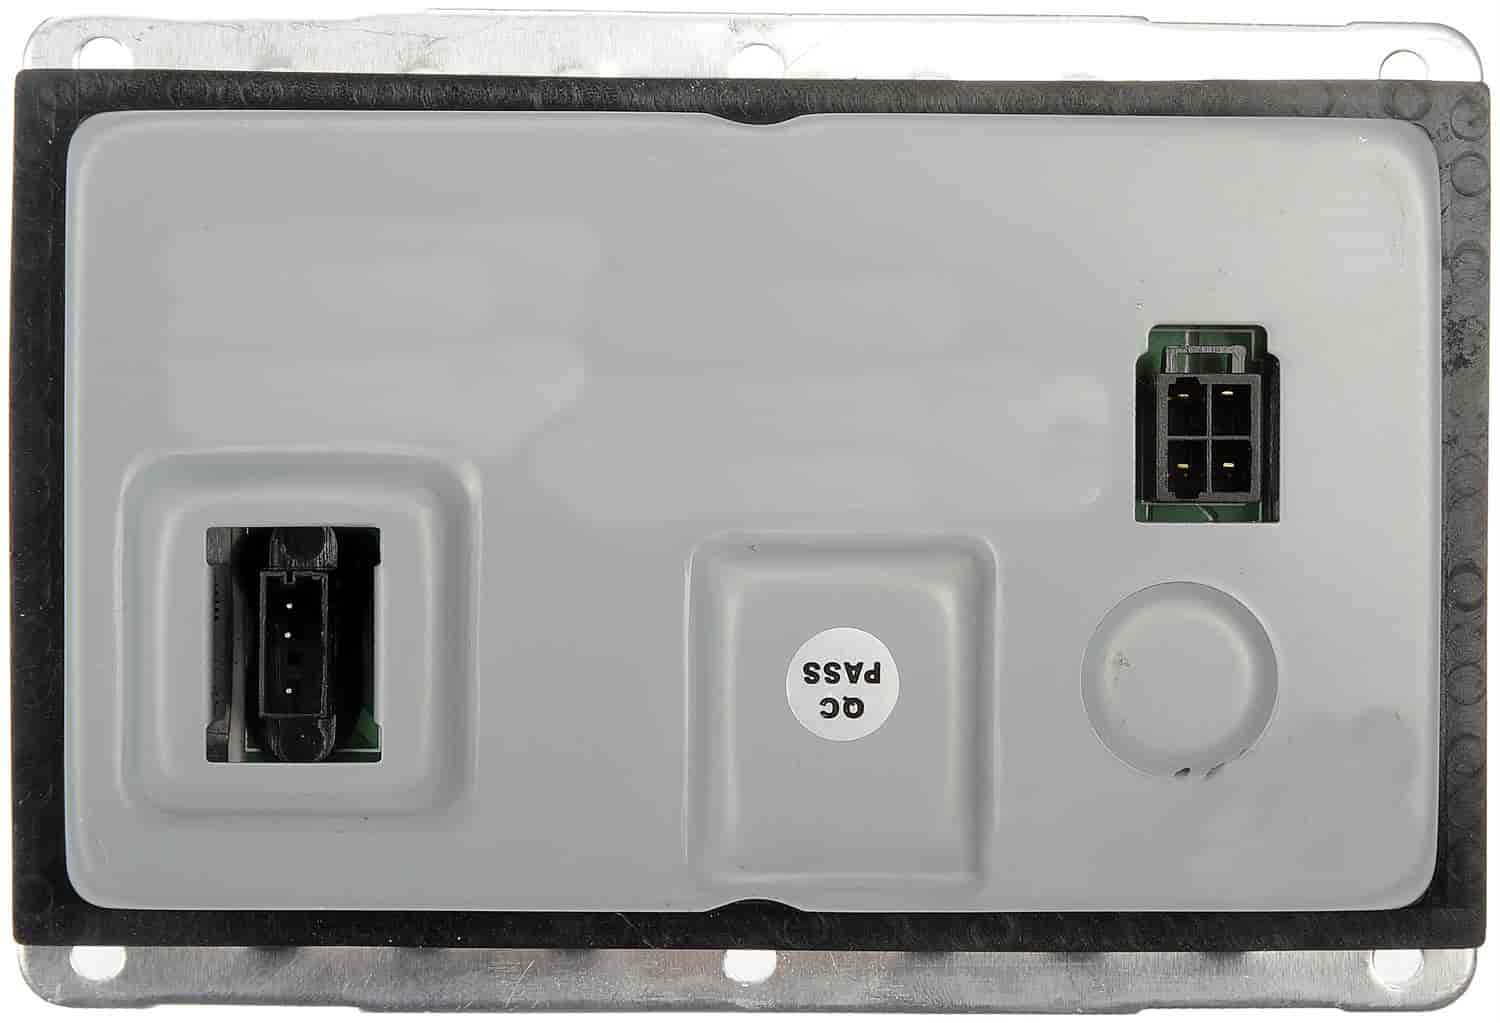 Dorman Products 601-051 - Dorman High Intensity Discharge (HID) Control Module